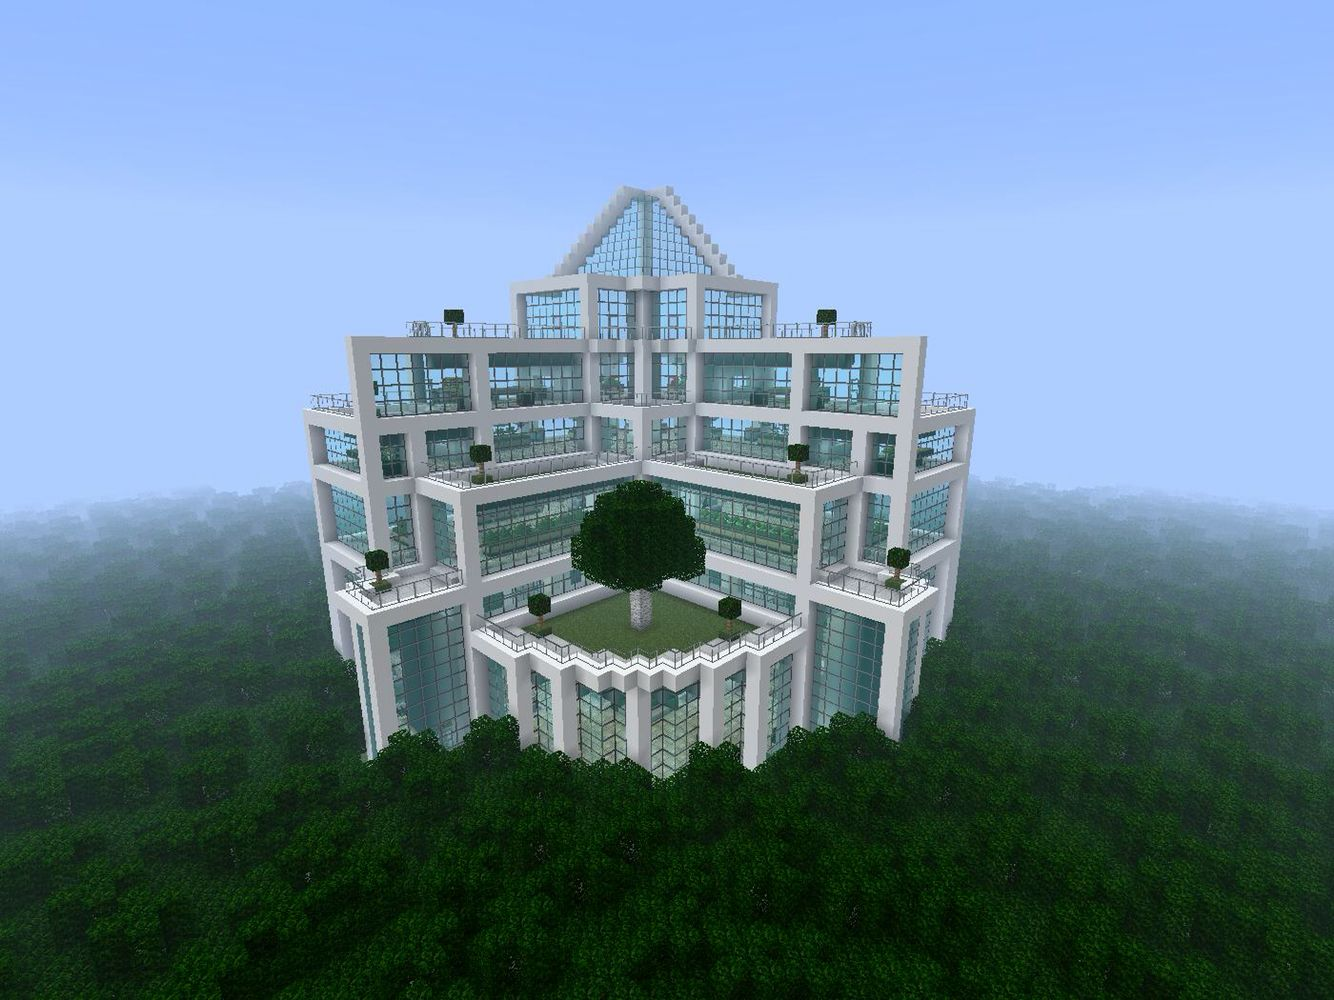 Minecraft Massive Quartz And Glass Building In The Middle Of A Jungle Biome Amazing Minecraft Minecraft Creations Minecraft Projects